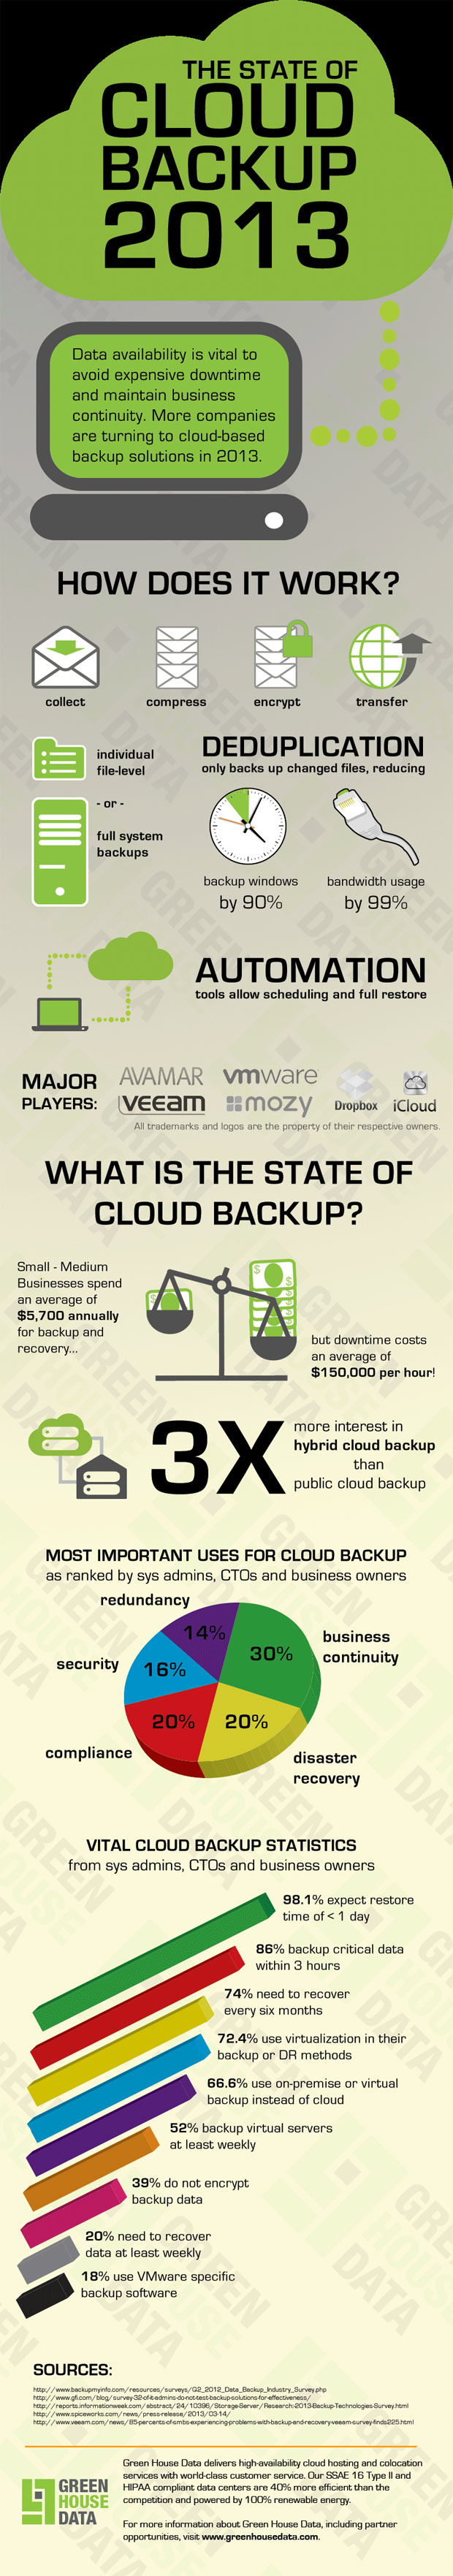 cloud-backup-2013-infographic